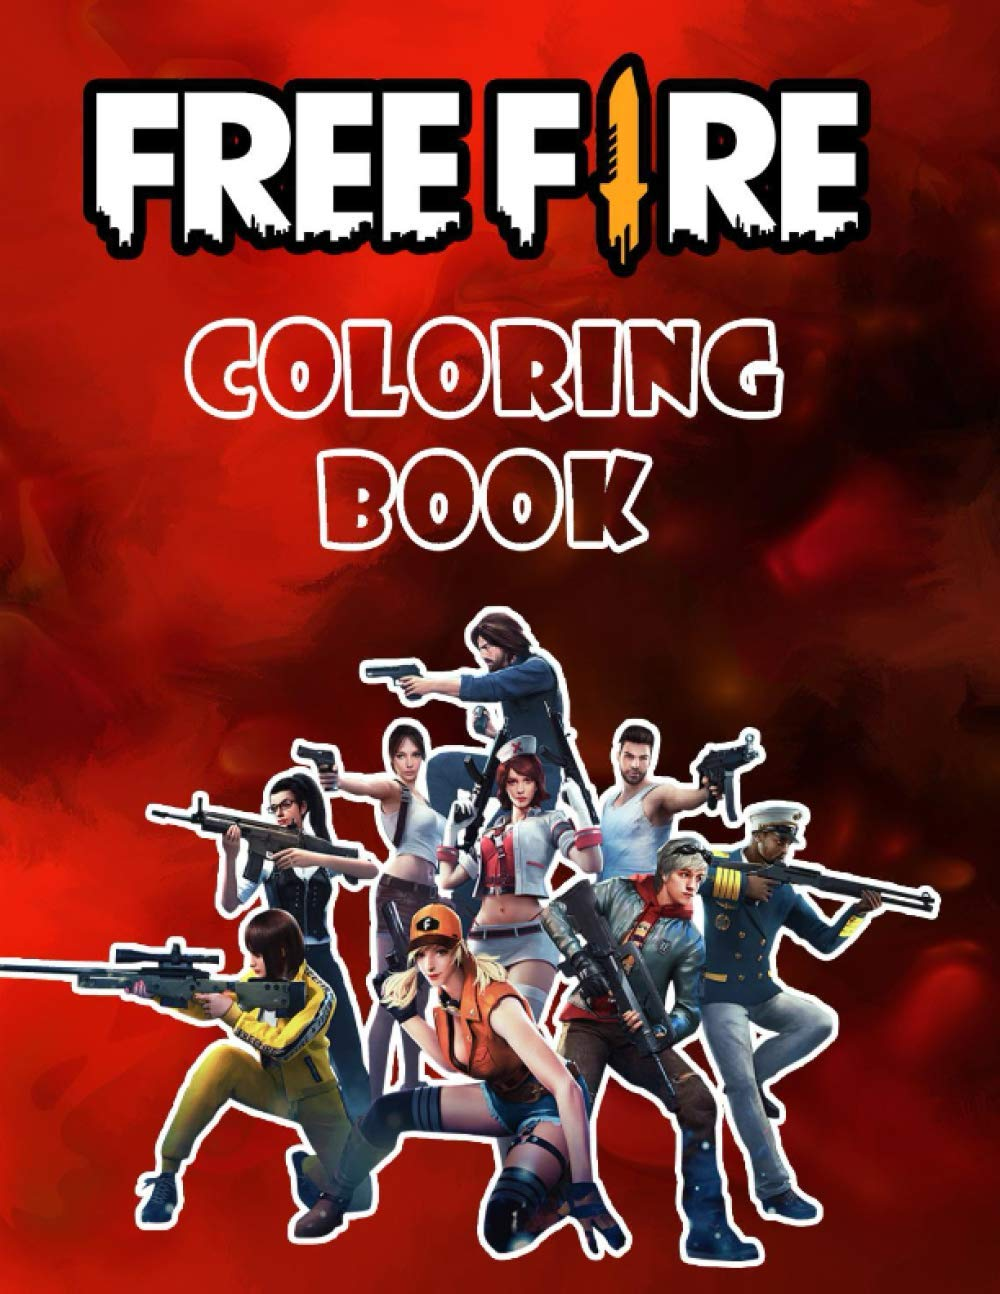 Free Fire Coloring Book 50 Coloring Pages For Kids And Adults Characters Weapons Skins Other All Seasons Collins Zack 9798552865079 Amazon Com Books